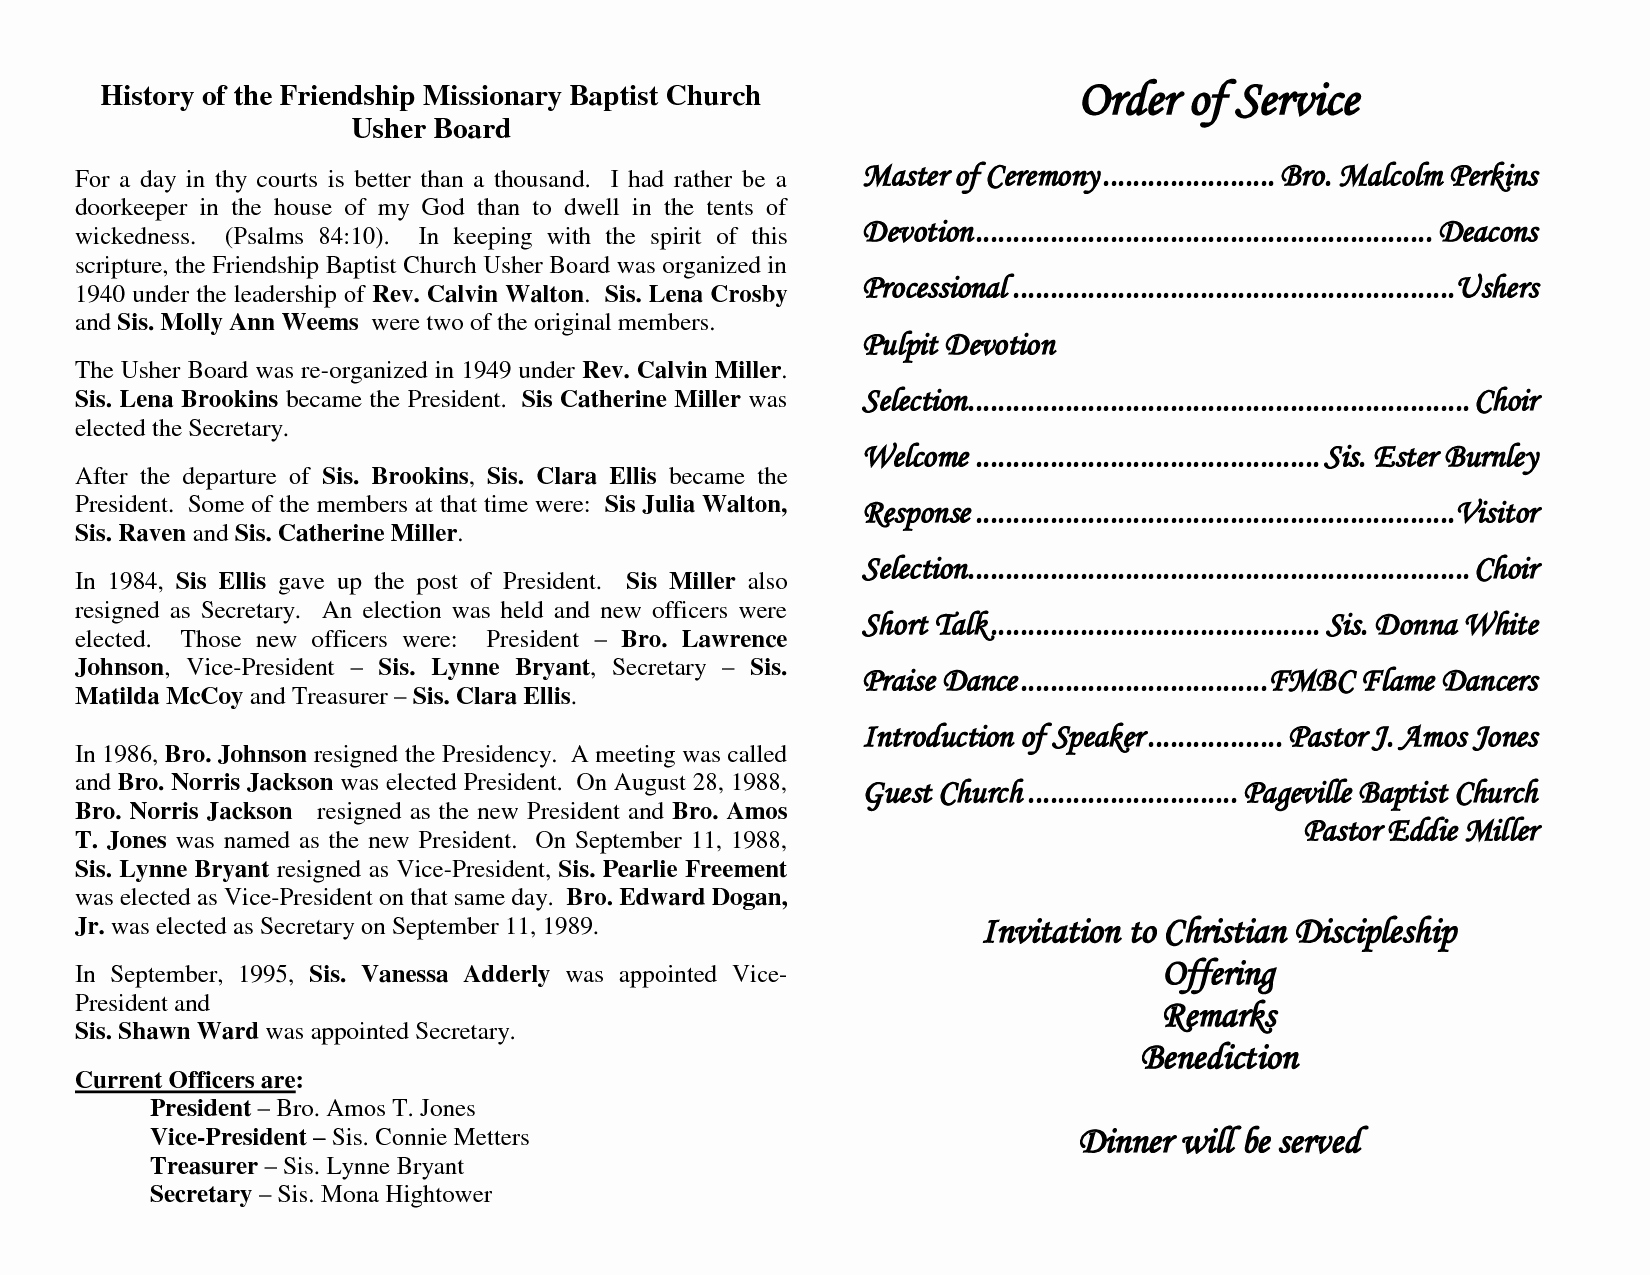 Church Service Program Template Fresh Best S Of Church Programs order Service Church